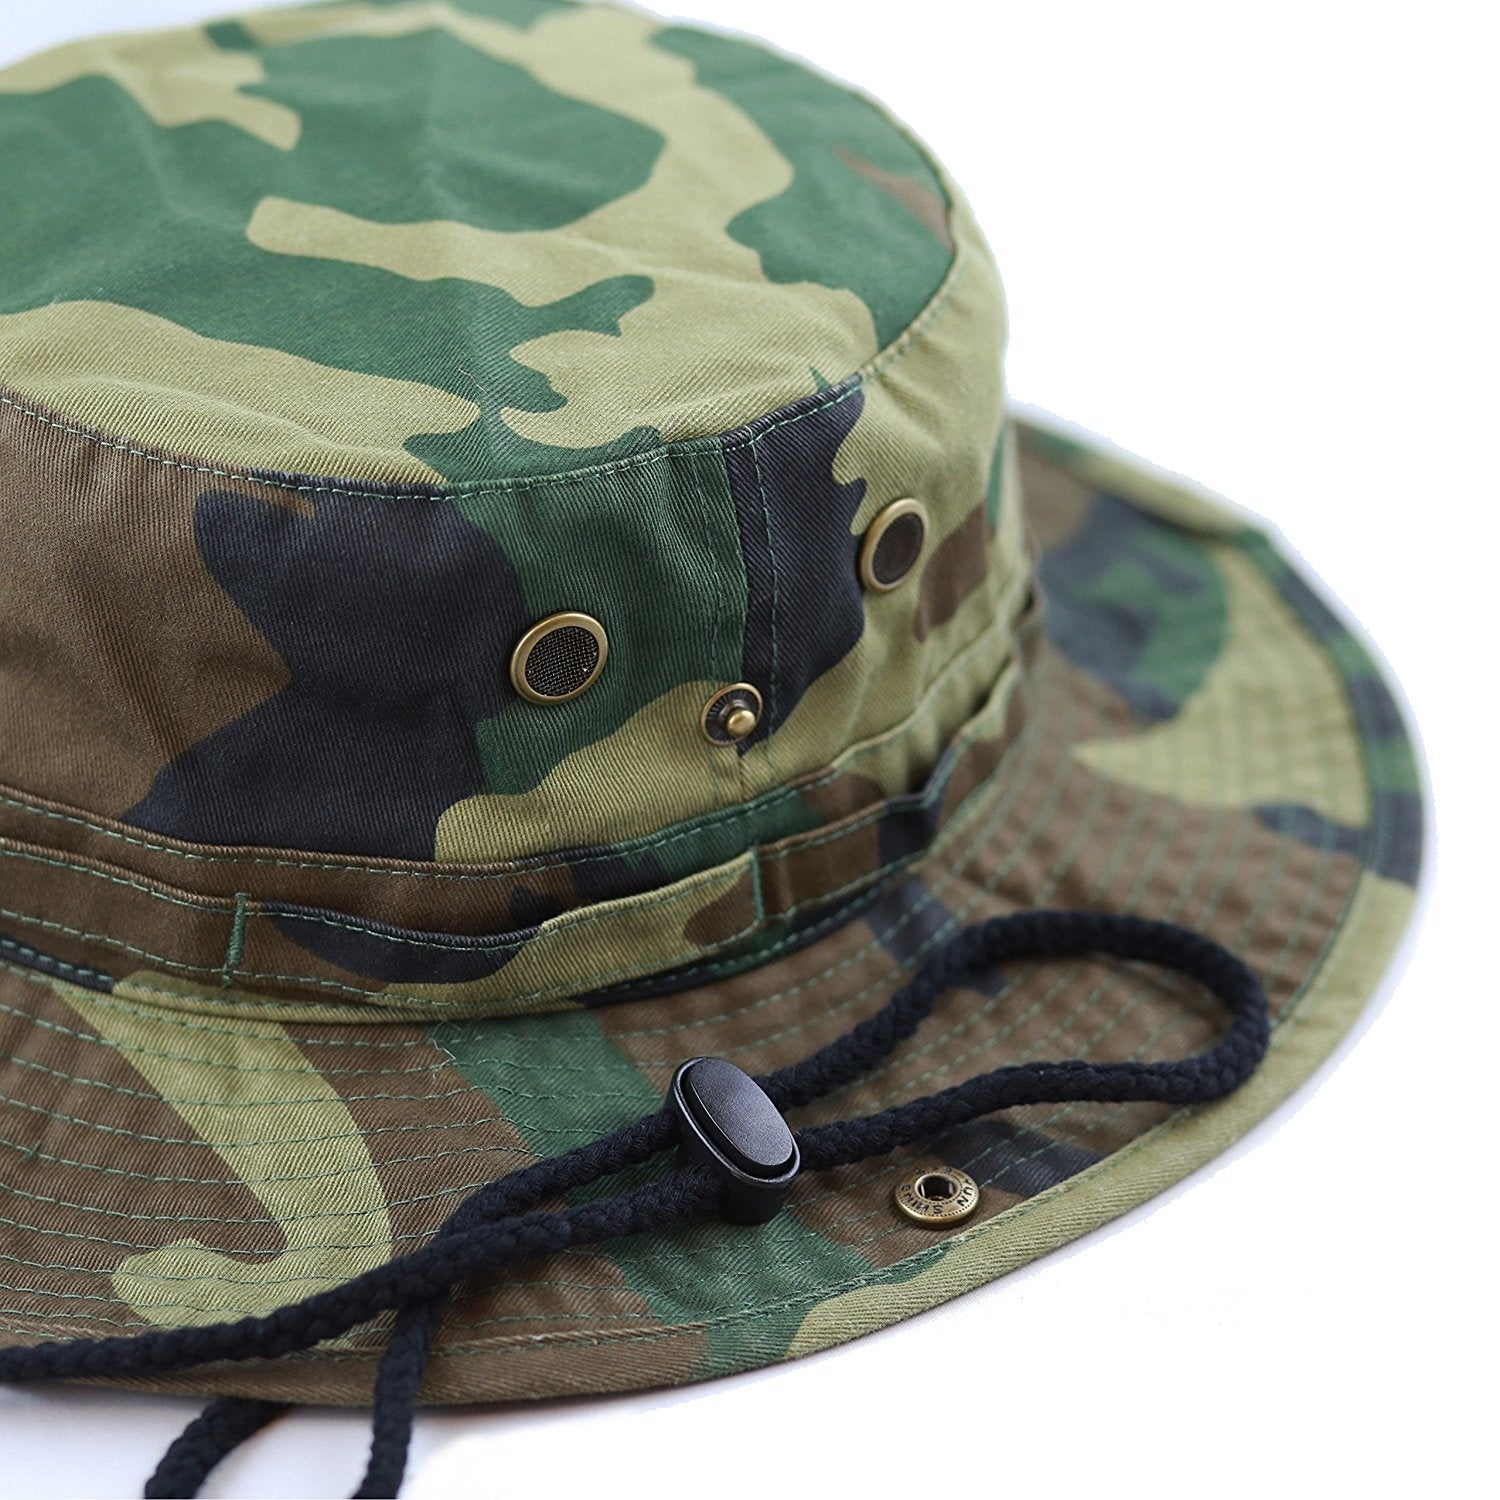 ecc2007a742 Shop Men Women Boonie hat Cotton Wide Brim Foldable Double-Sided Outdoor -  On Sale - Free Shipping On Orders Over  45 - Overstock - 22120775